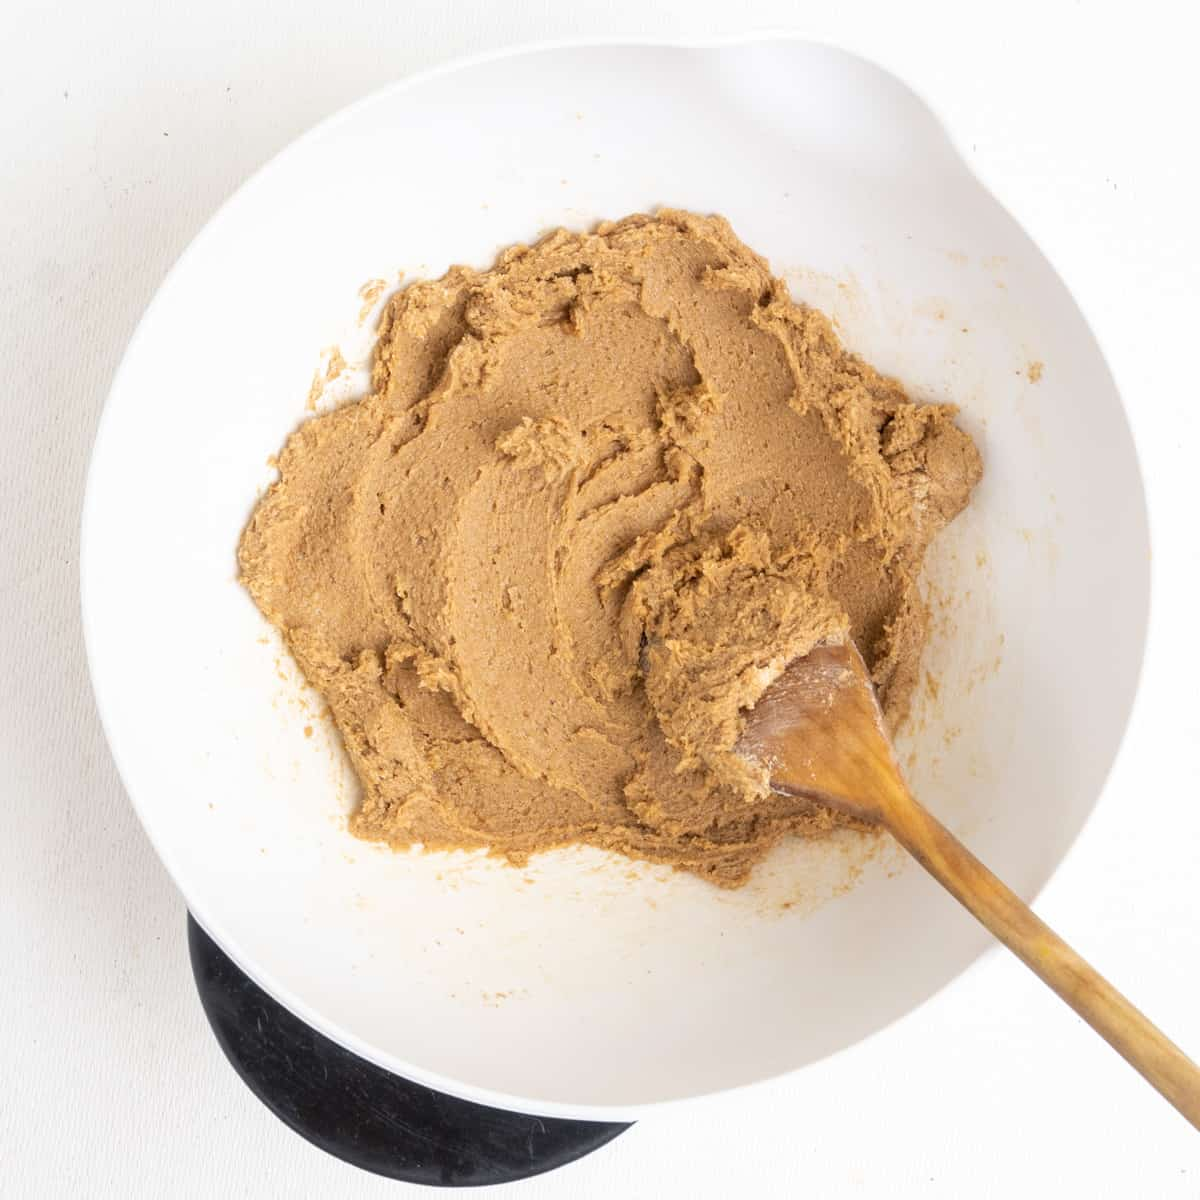 Brown sugar and vegan butter creamed together in a mixing bowl using a wooden spoon.